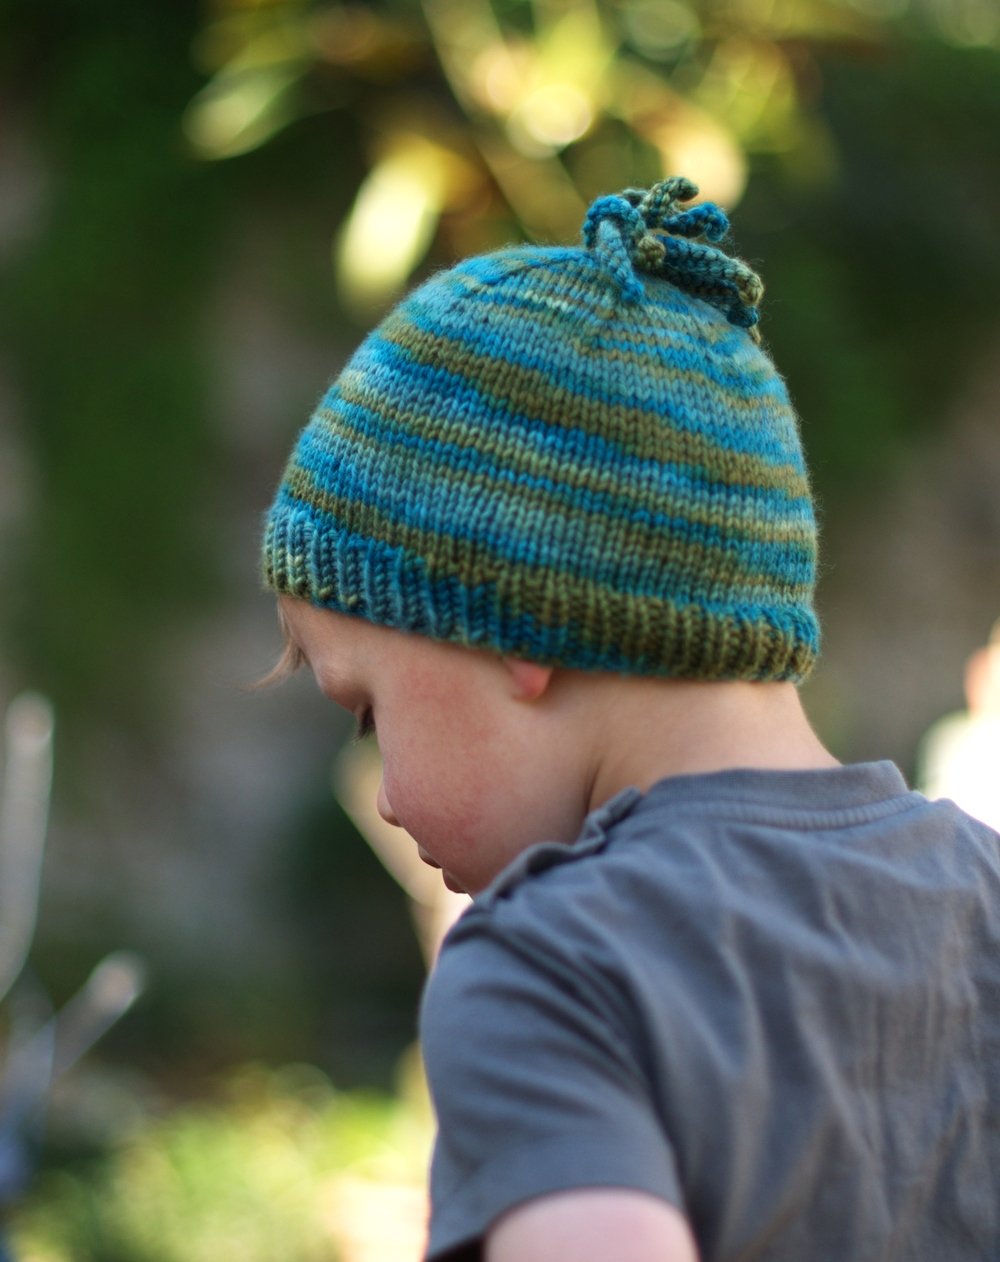 Polpo childs beanie knitting pattern for variegated yarn